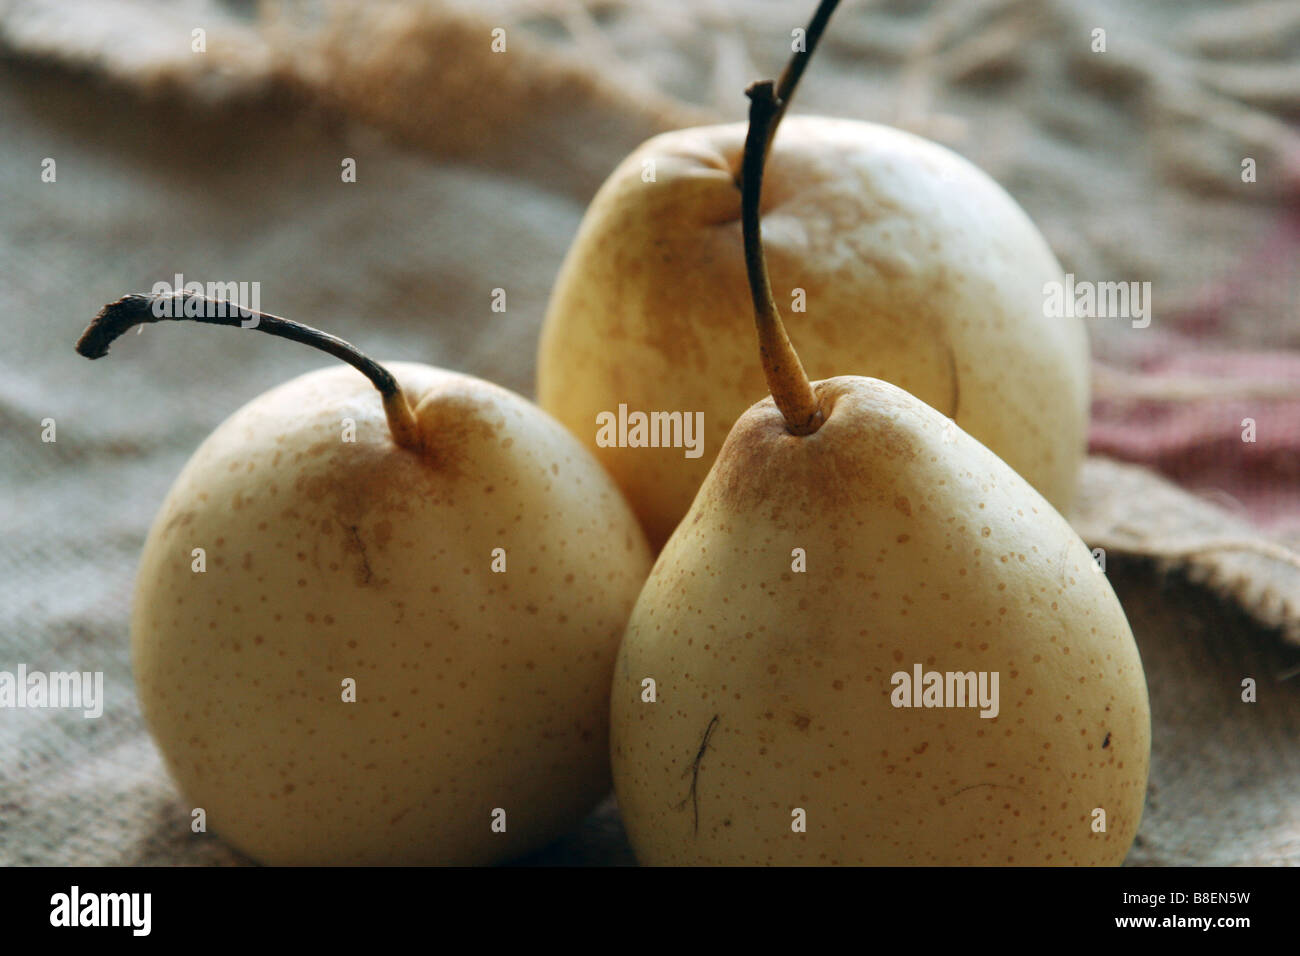 Pear fruit - Stock Image